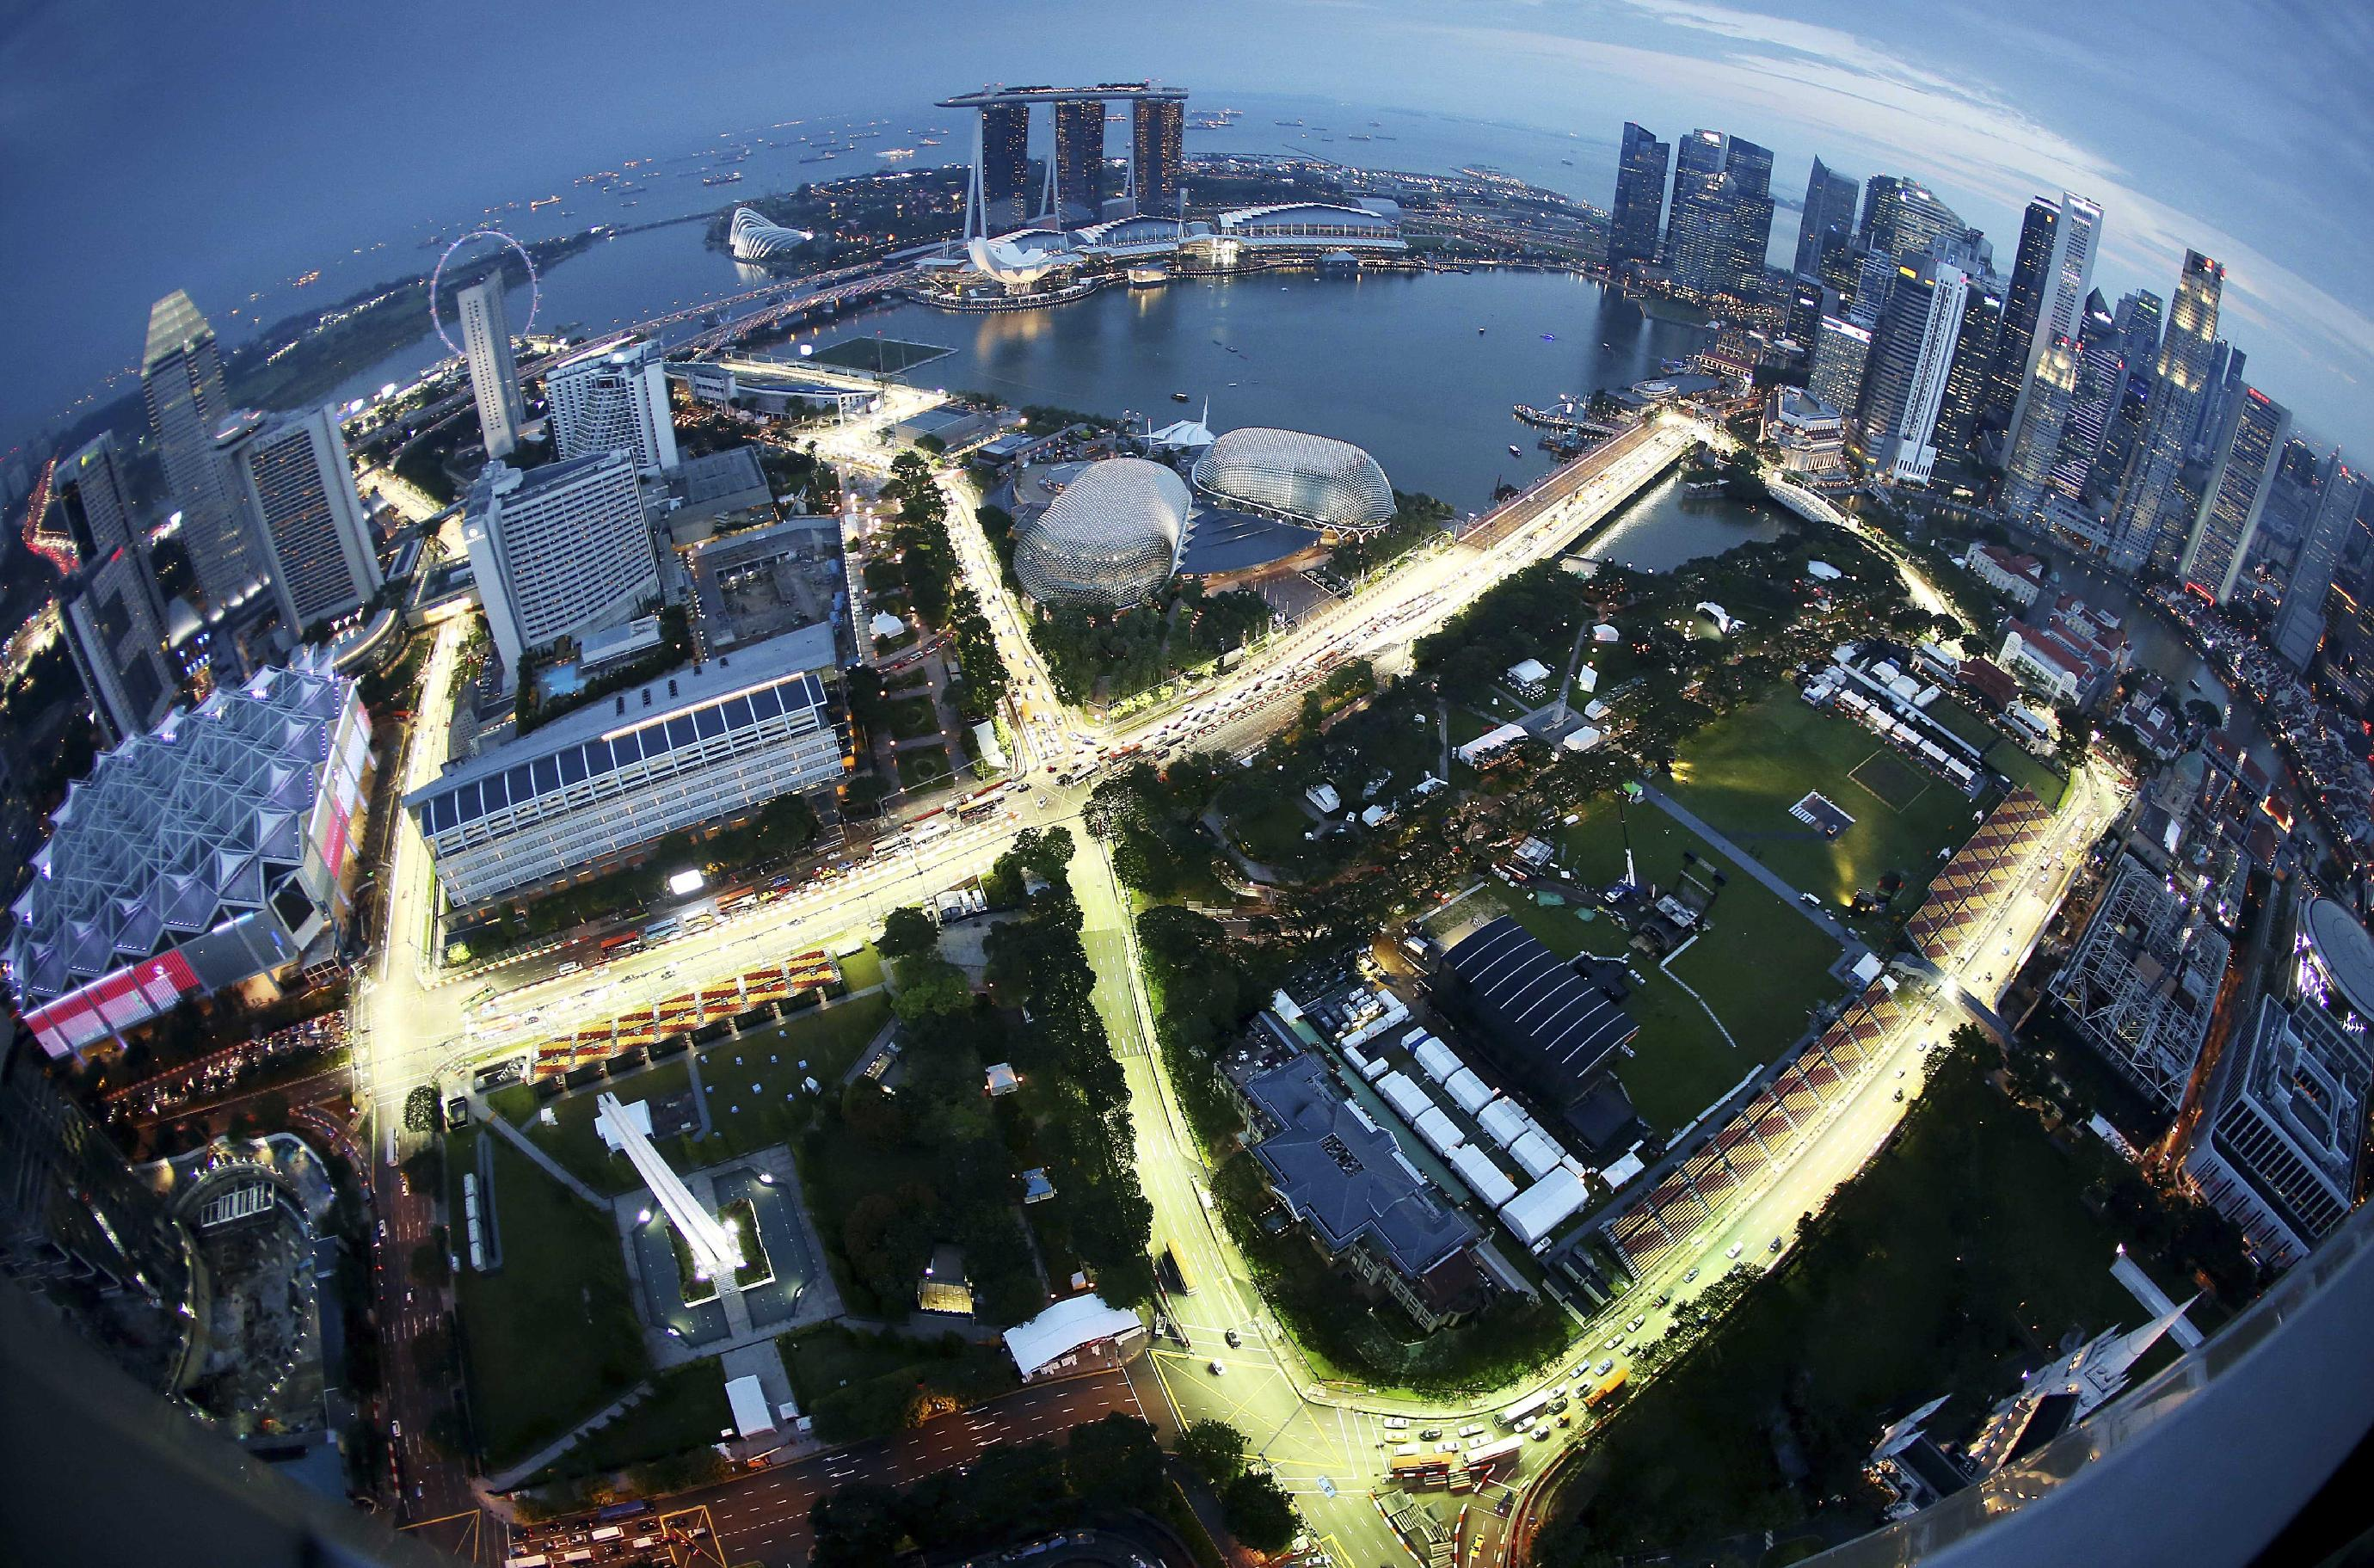 A birdeye view of the Singapore F1 Grand Prix's Marina Bay City Circuit, shot with a fish-eye lens, is seen at dusk from Swissotel The Stamford in Singapore, Tuesday, Sept. 17, 2013. The race is slated for September 21-23